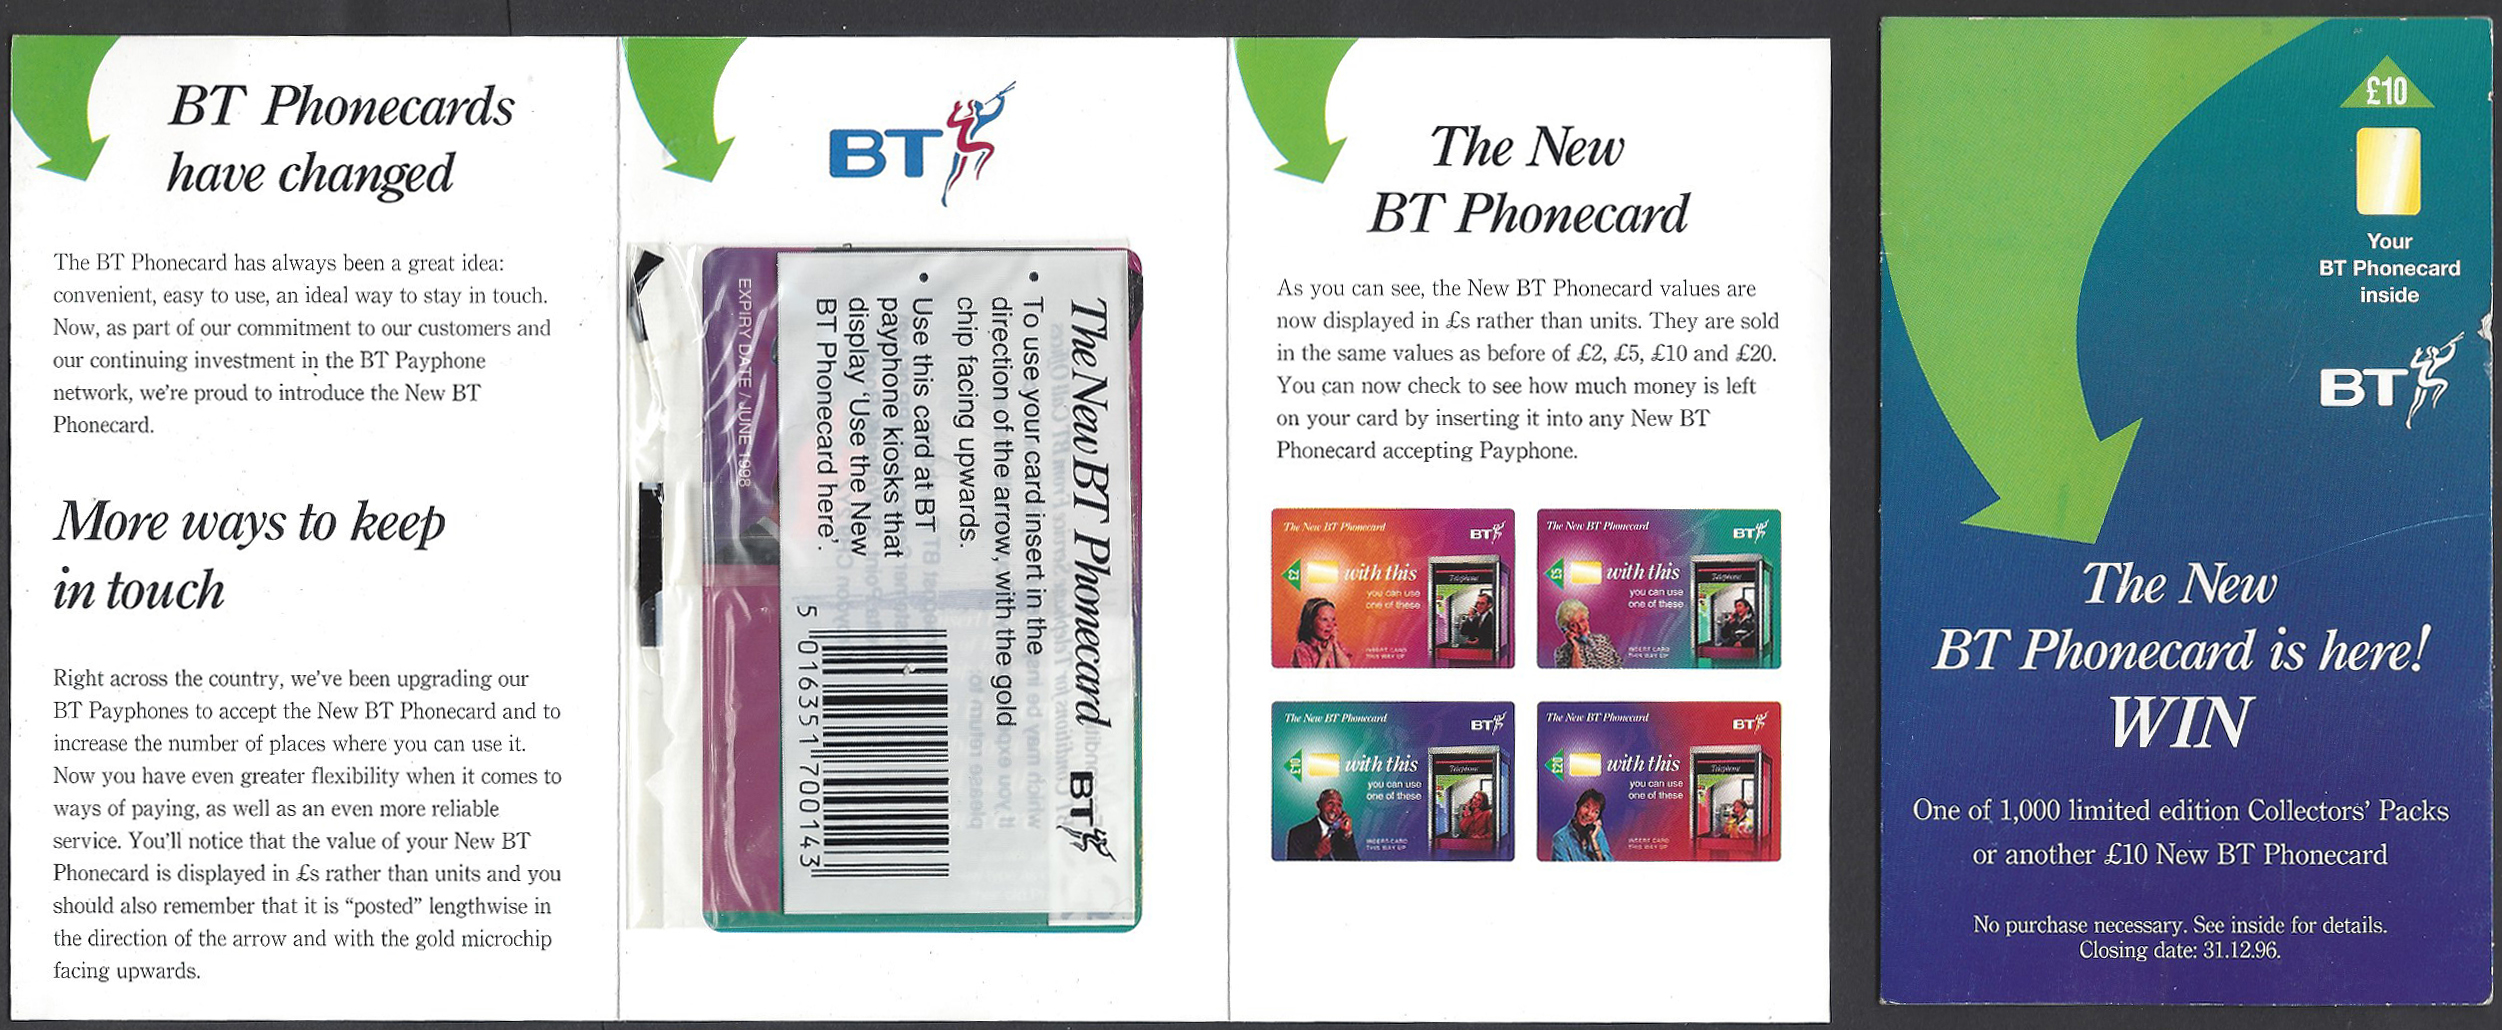 'New' chip cards were introduced by BT in 1996. First issues of these came in an explanatory leaflet